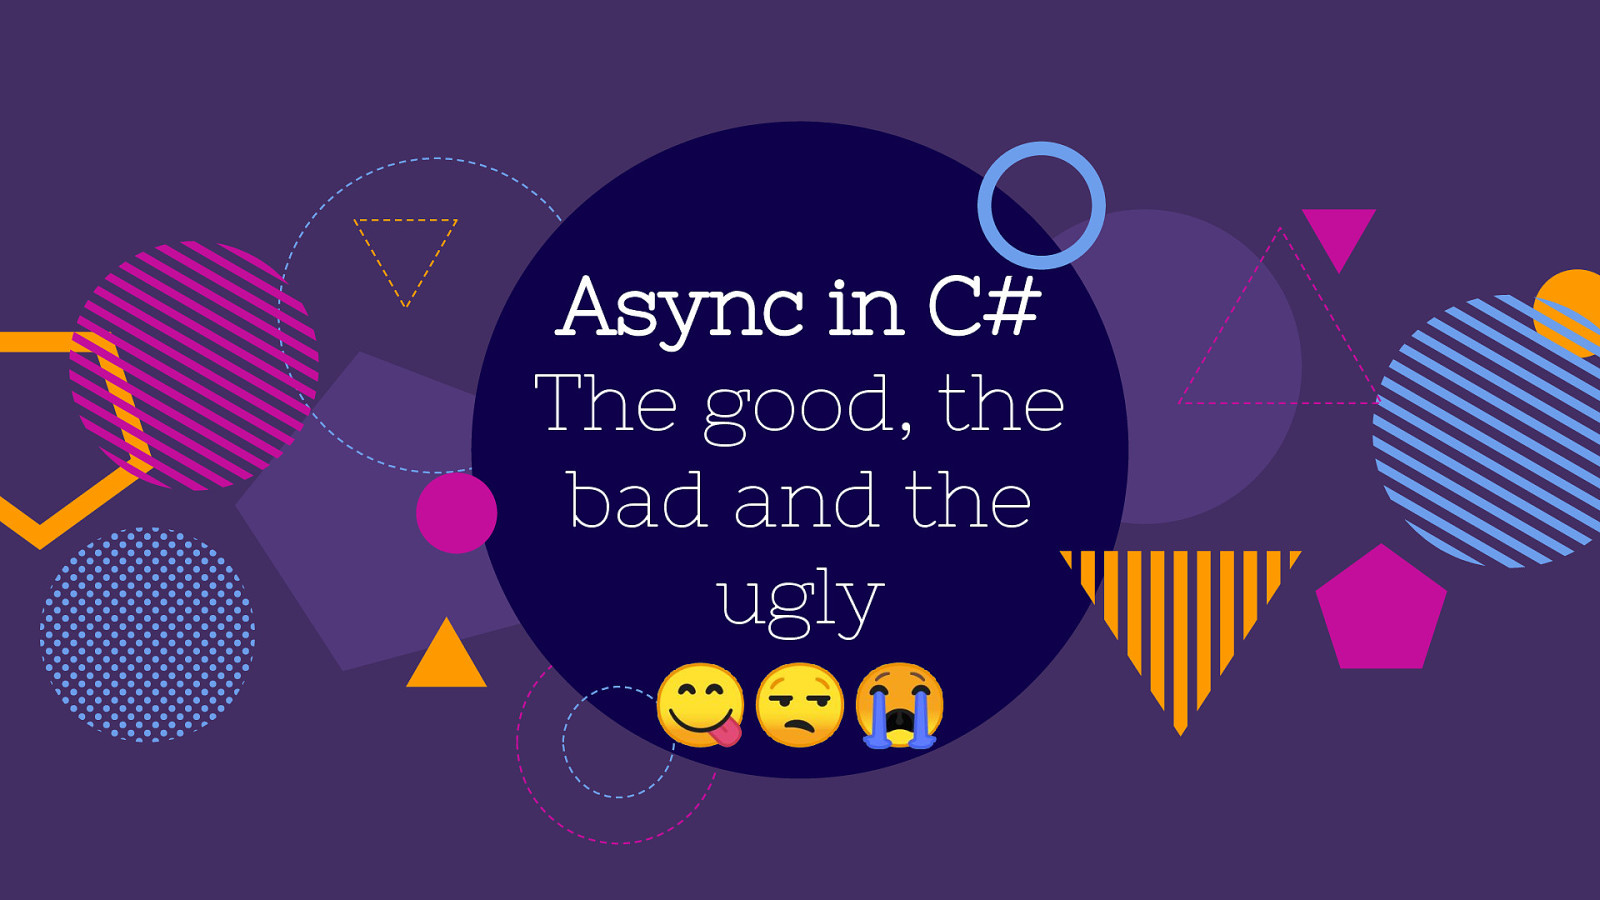 Async in C# - The Good, the Bad and the Ugly